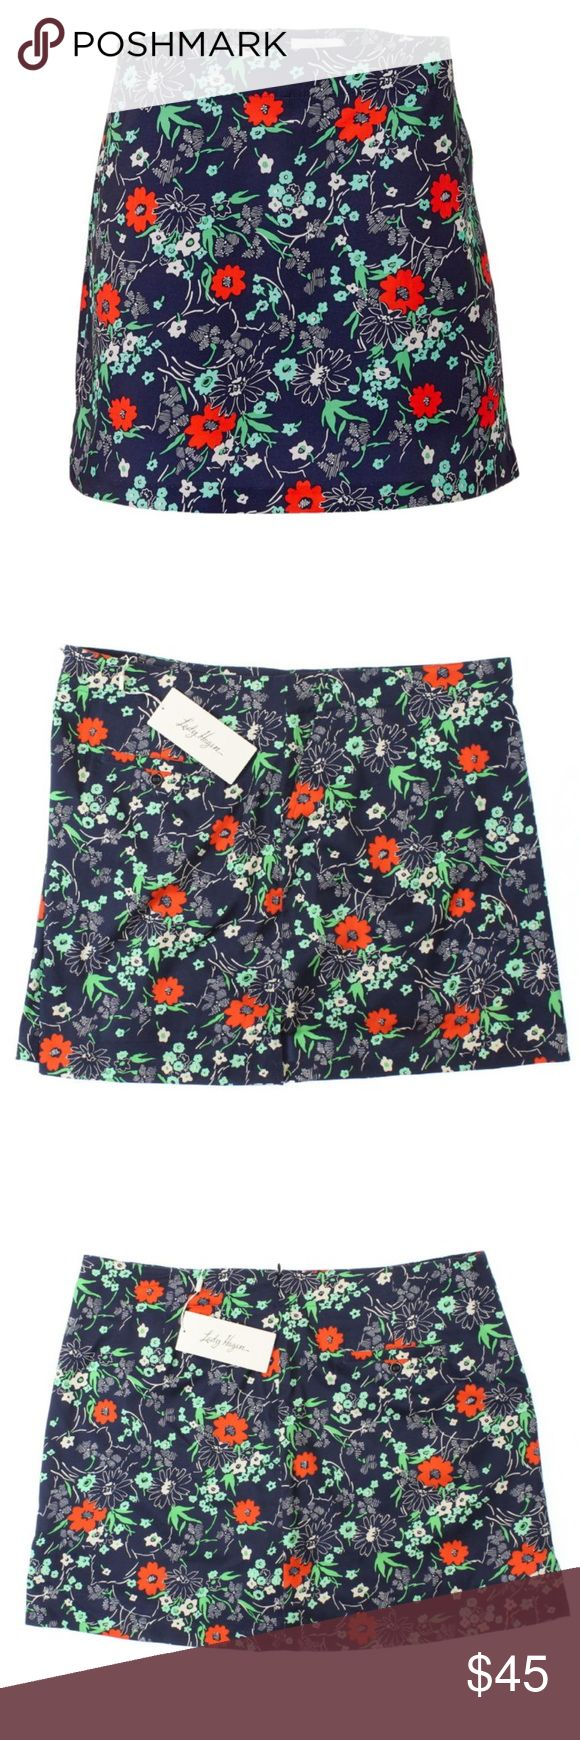 Lady Hagen monarch floral golf performance skort Brand new with tags. Retails at $55. Sizes available: 4, 6, 8 & 10. Super cute pattern. Great for golf and tennis! Shorts underneath! A great casual skirt/skort or the perfect 'active/performance' skort, too! Please see the 5th photo for additional details and features. I also have this skort for sale in a beautiful ocean club print! (See last photo). Lady Hagen monarch floral golf skort. Lady Hagen Shorts Skorts